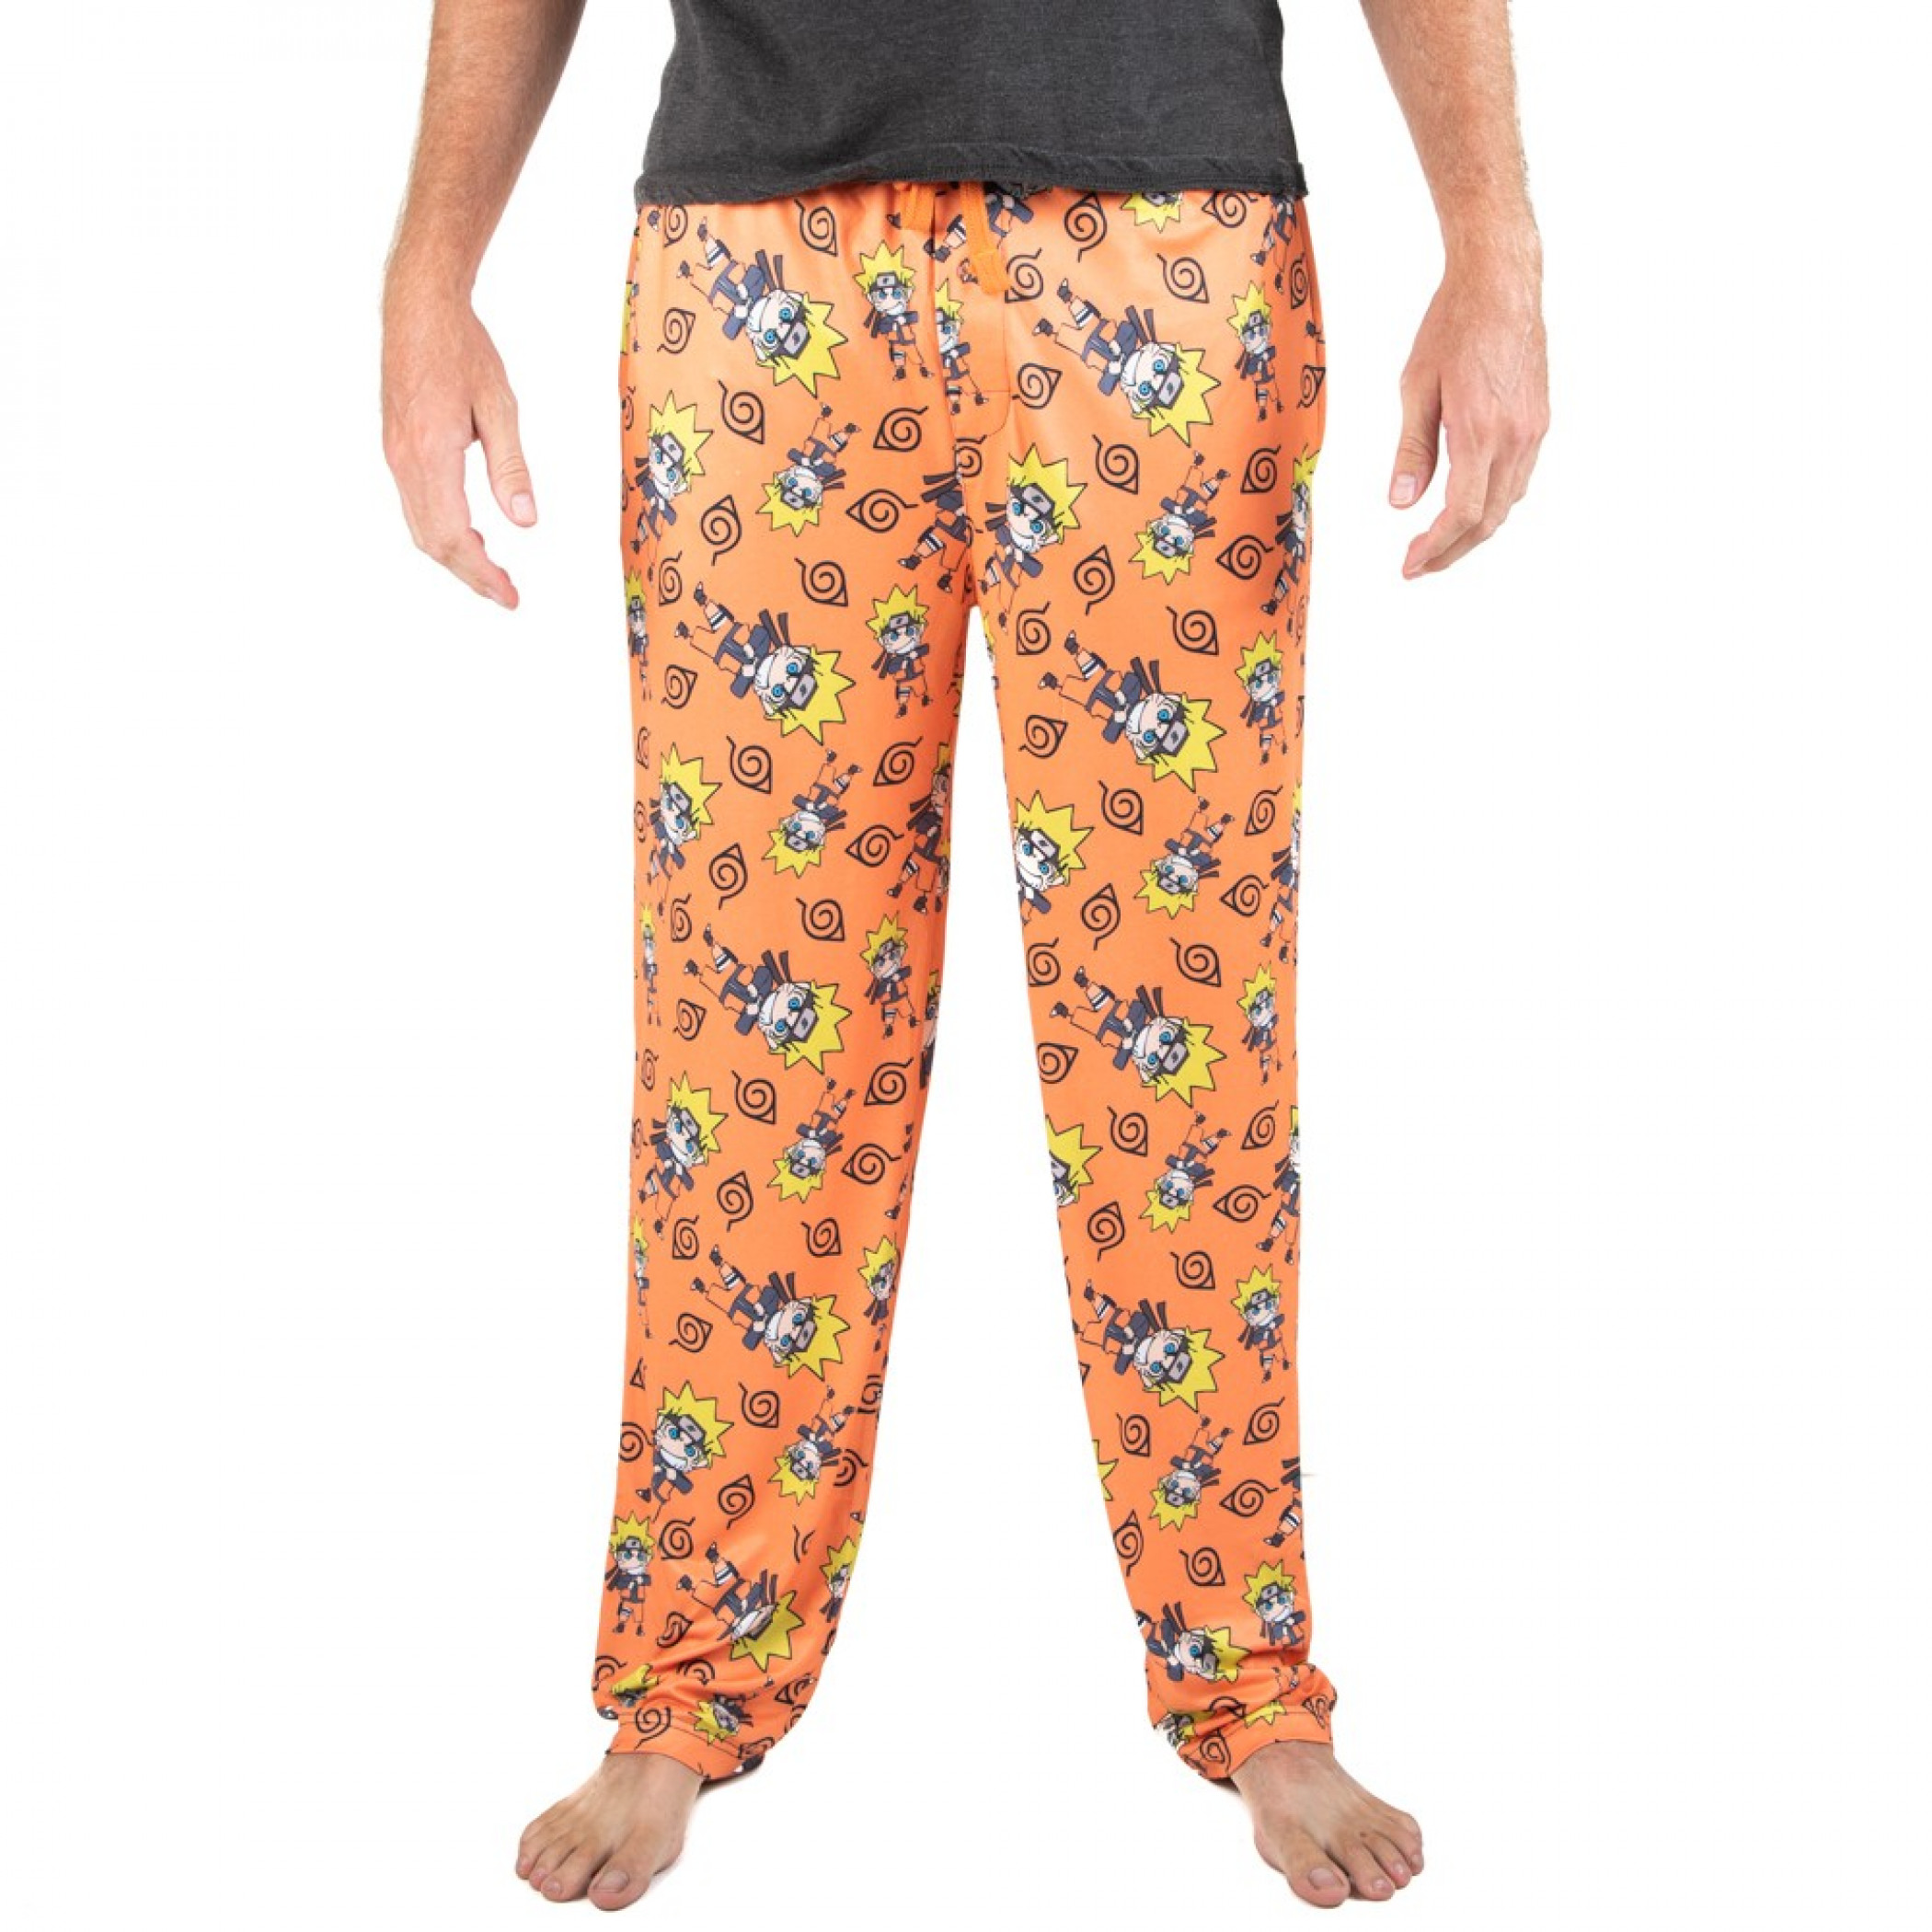 Naruto Character and Symbols All Over Print Sleep Pants